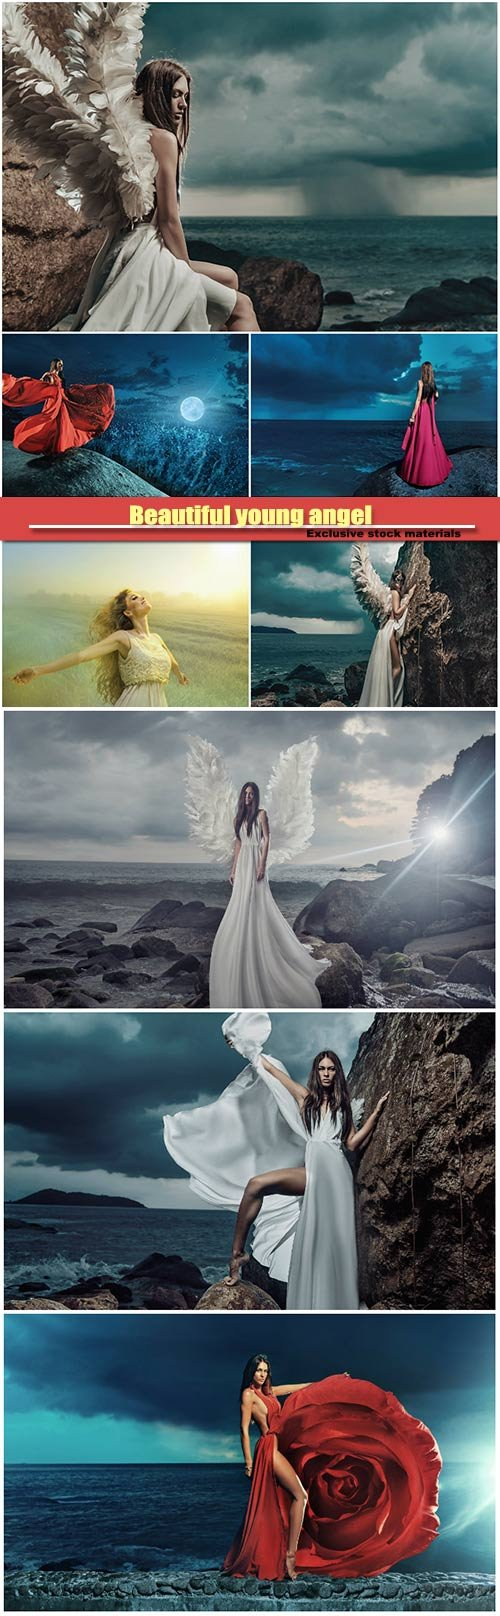 Beautiful young angel climbing on the cliff, lady looking at the storm on the ocean